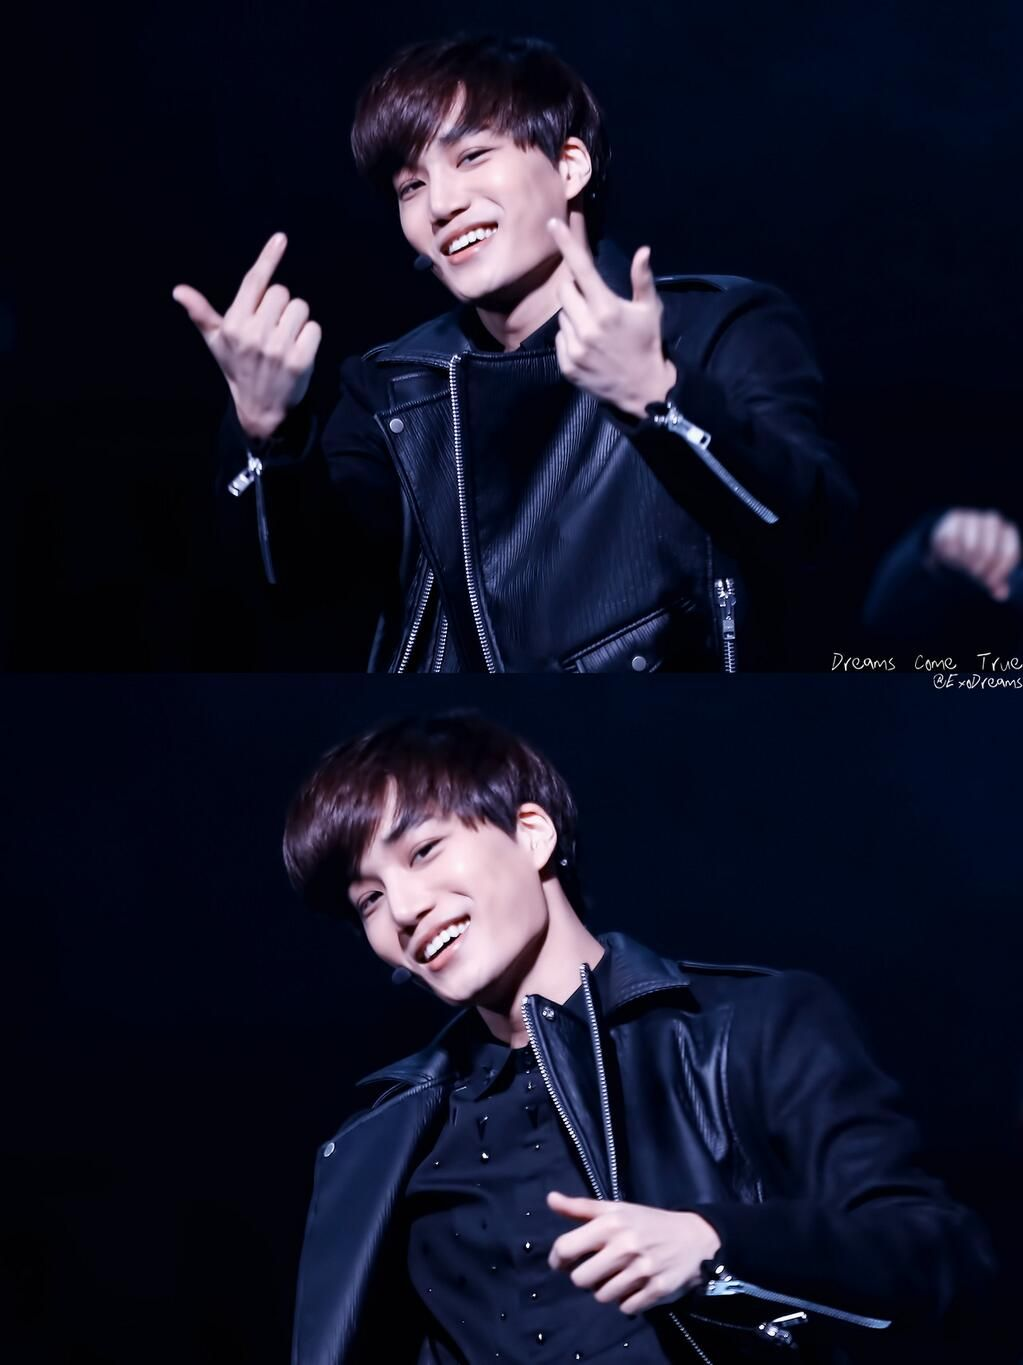 140321 Kai @ Seoul Fashion Week 2014 (cr:dreams come true)